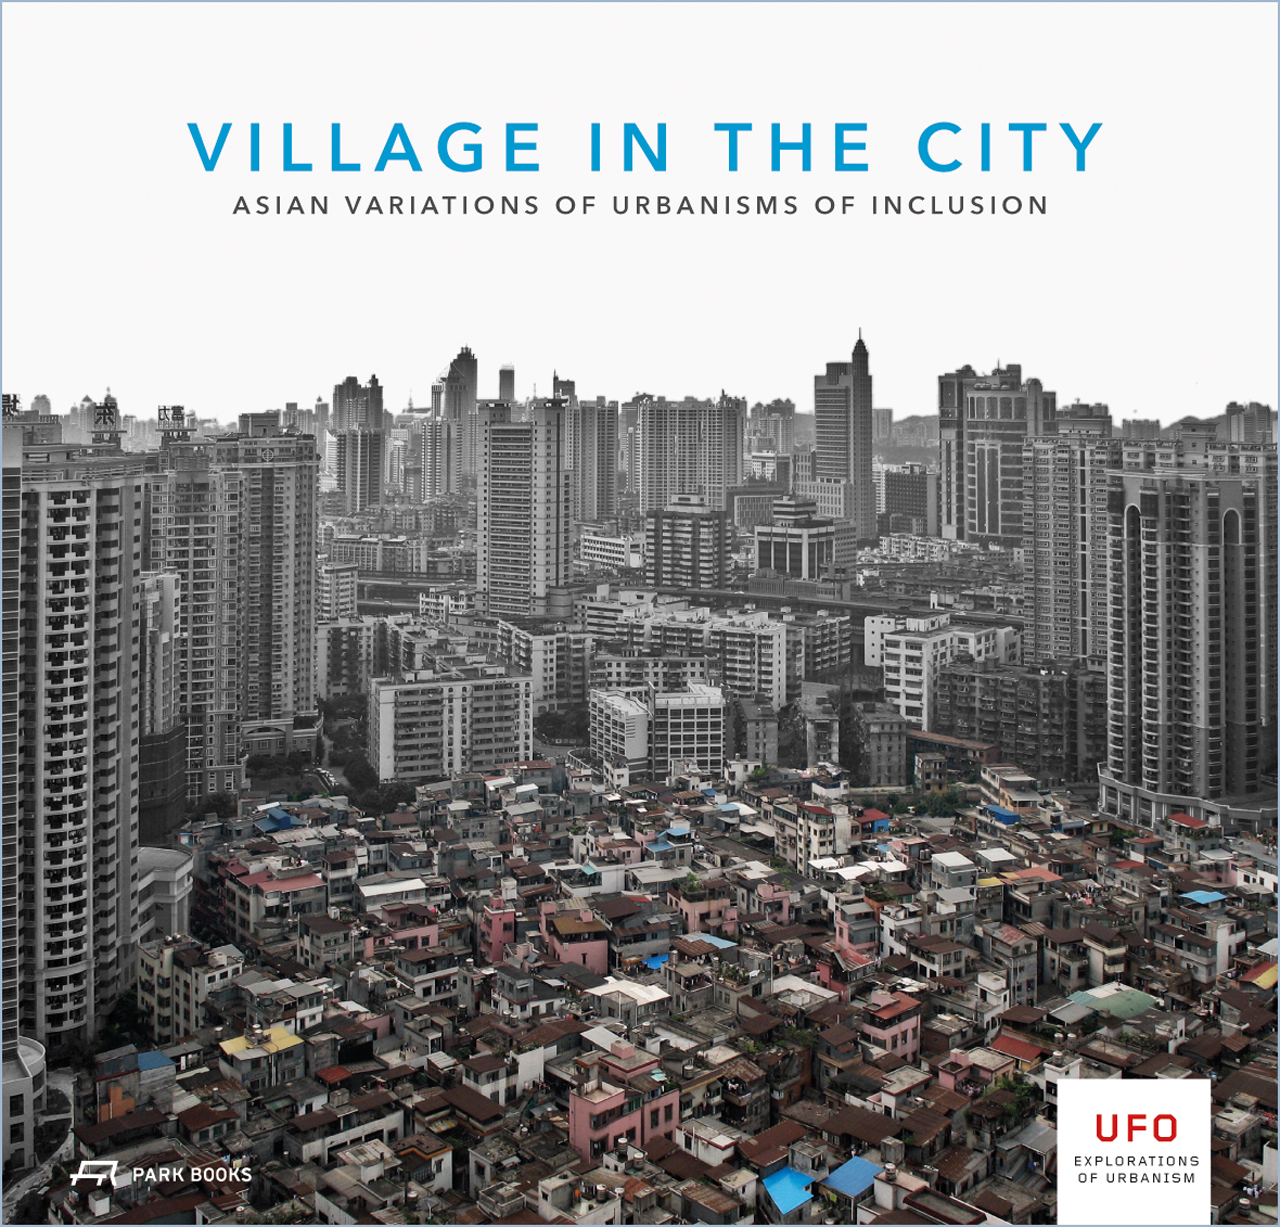 village vs city essay my town learnenglish teens british council  village in the city asian variations of urbanisms of inclusion village in the city addthis sharing